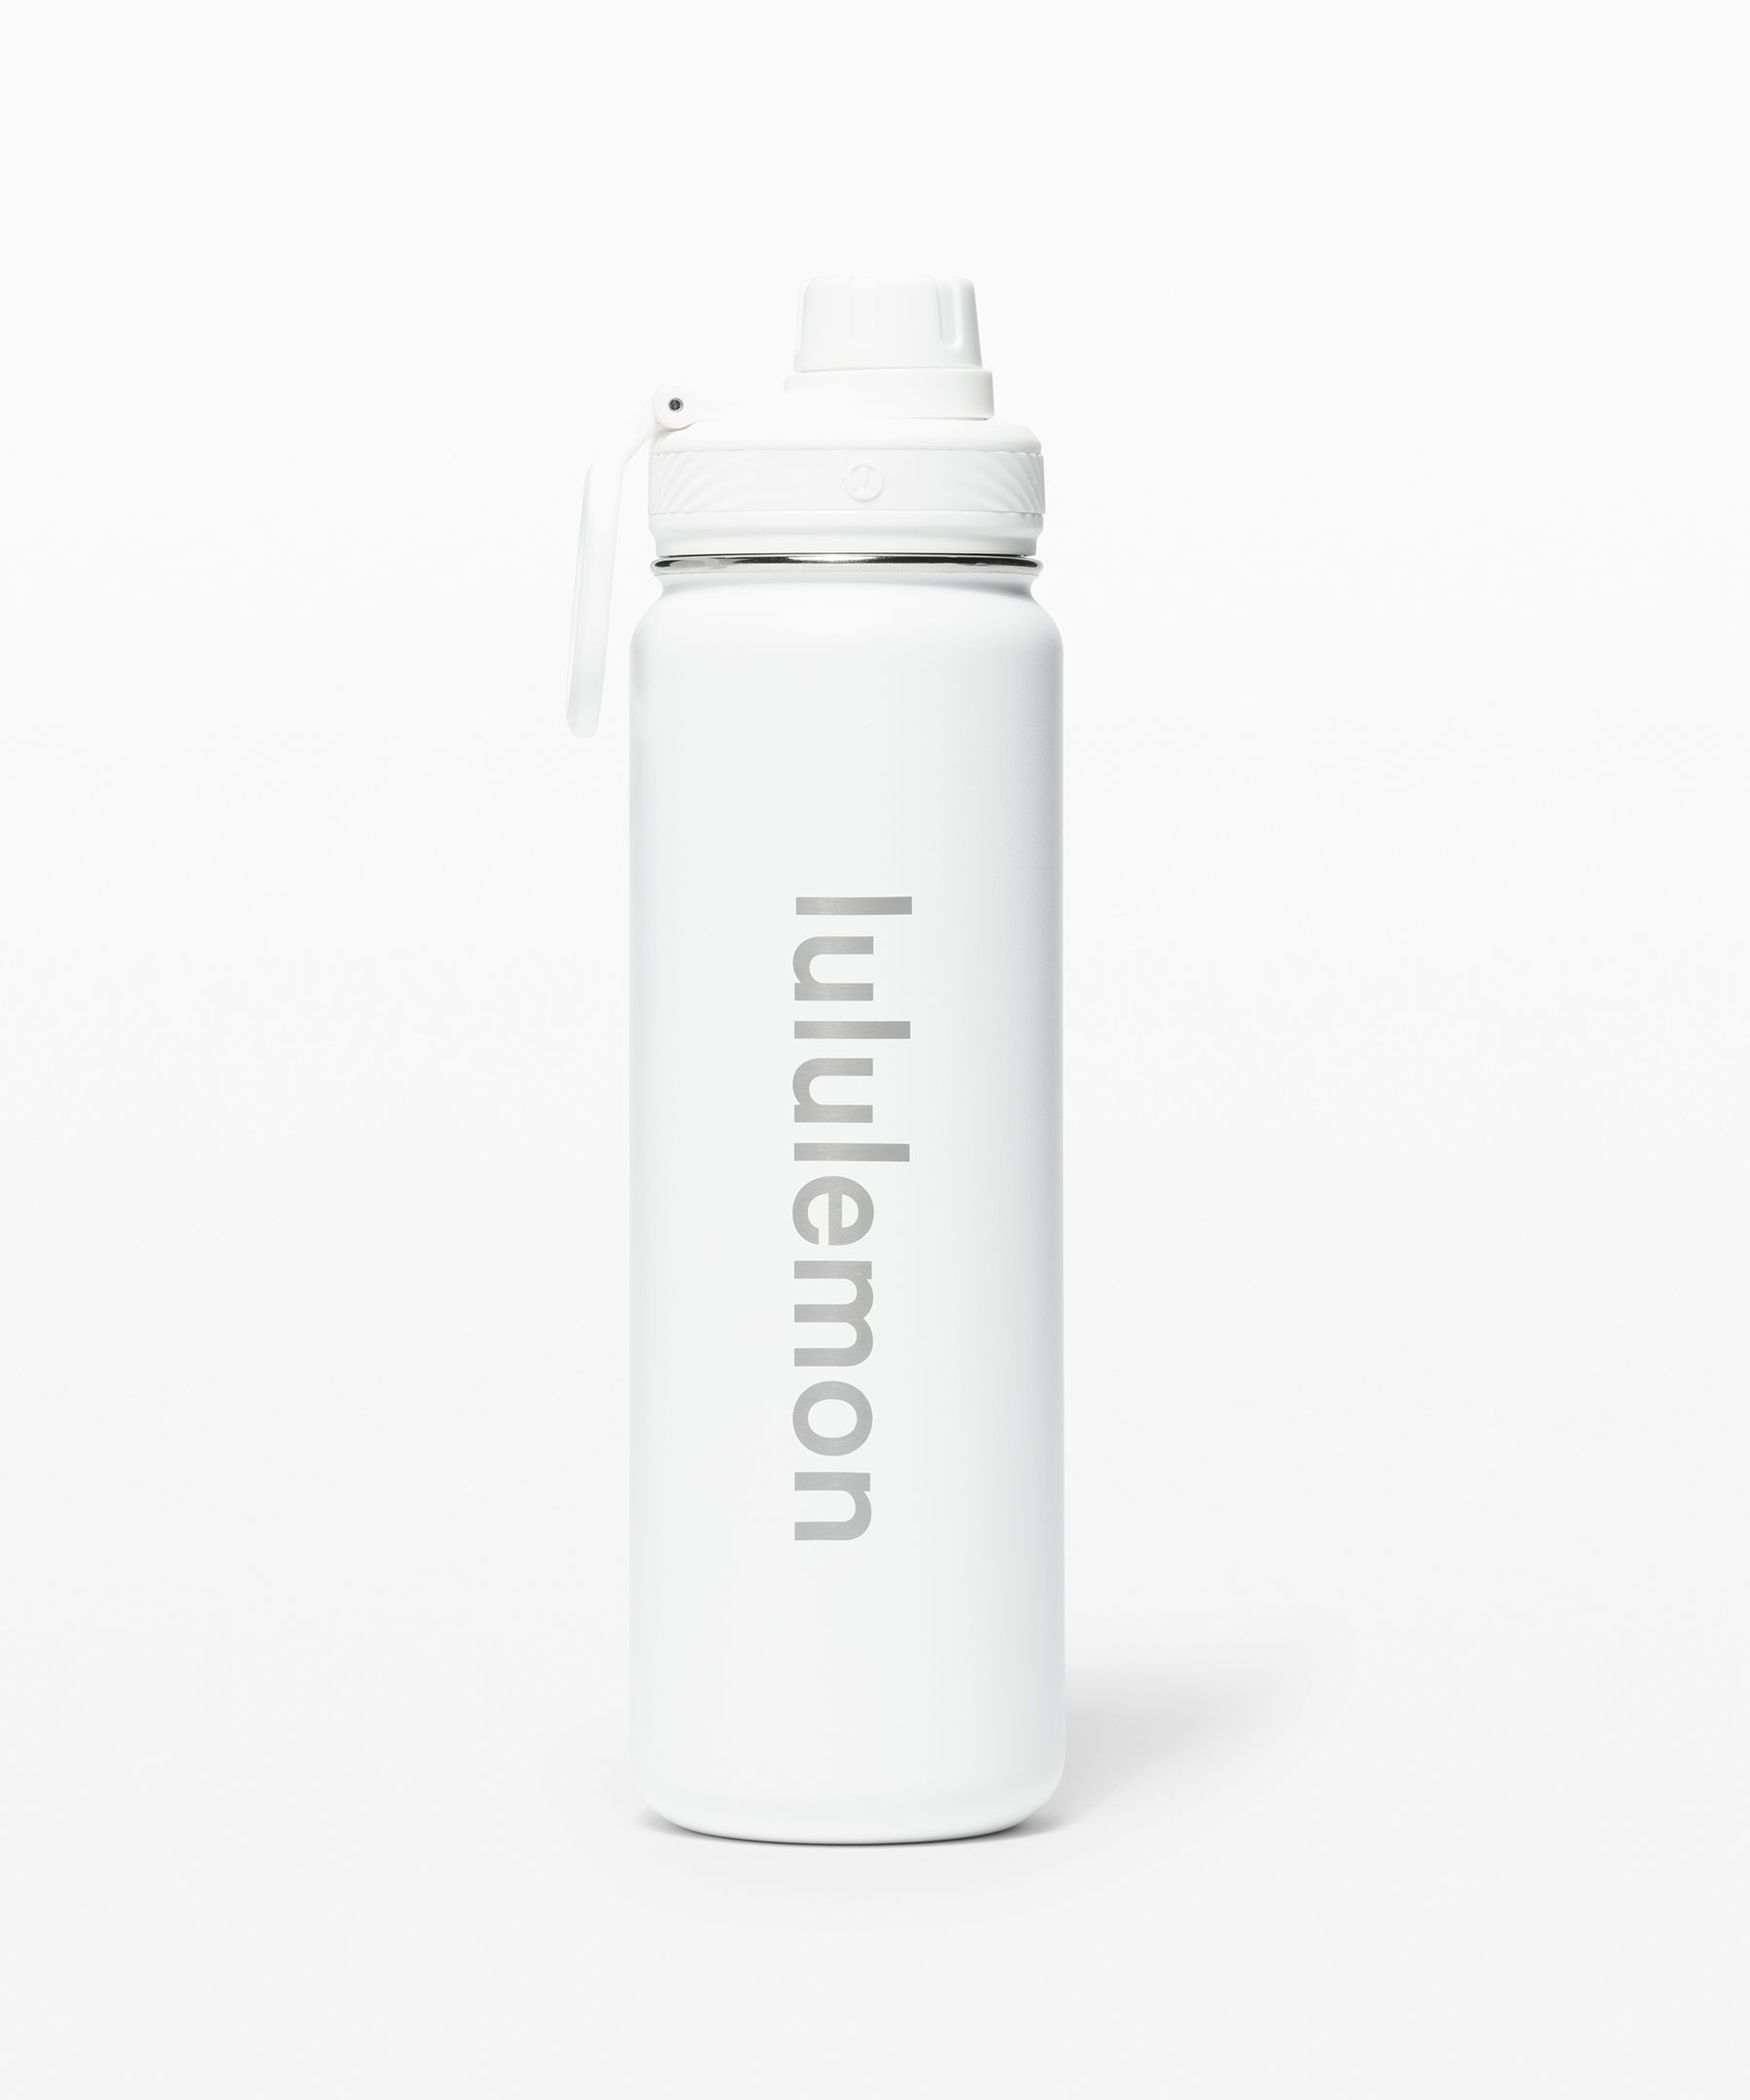 Stay hydrated all day long  with this insulated water  bottle. It fits into most cup  holders for in-transit  convenience, and features a  leak-proof lid and slip-free  texture so you can enjoy  spill-free one-handed  drinking—bottoms up.